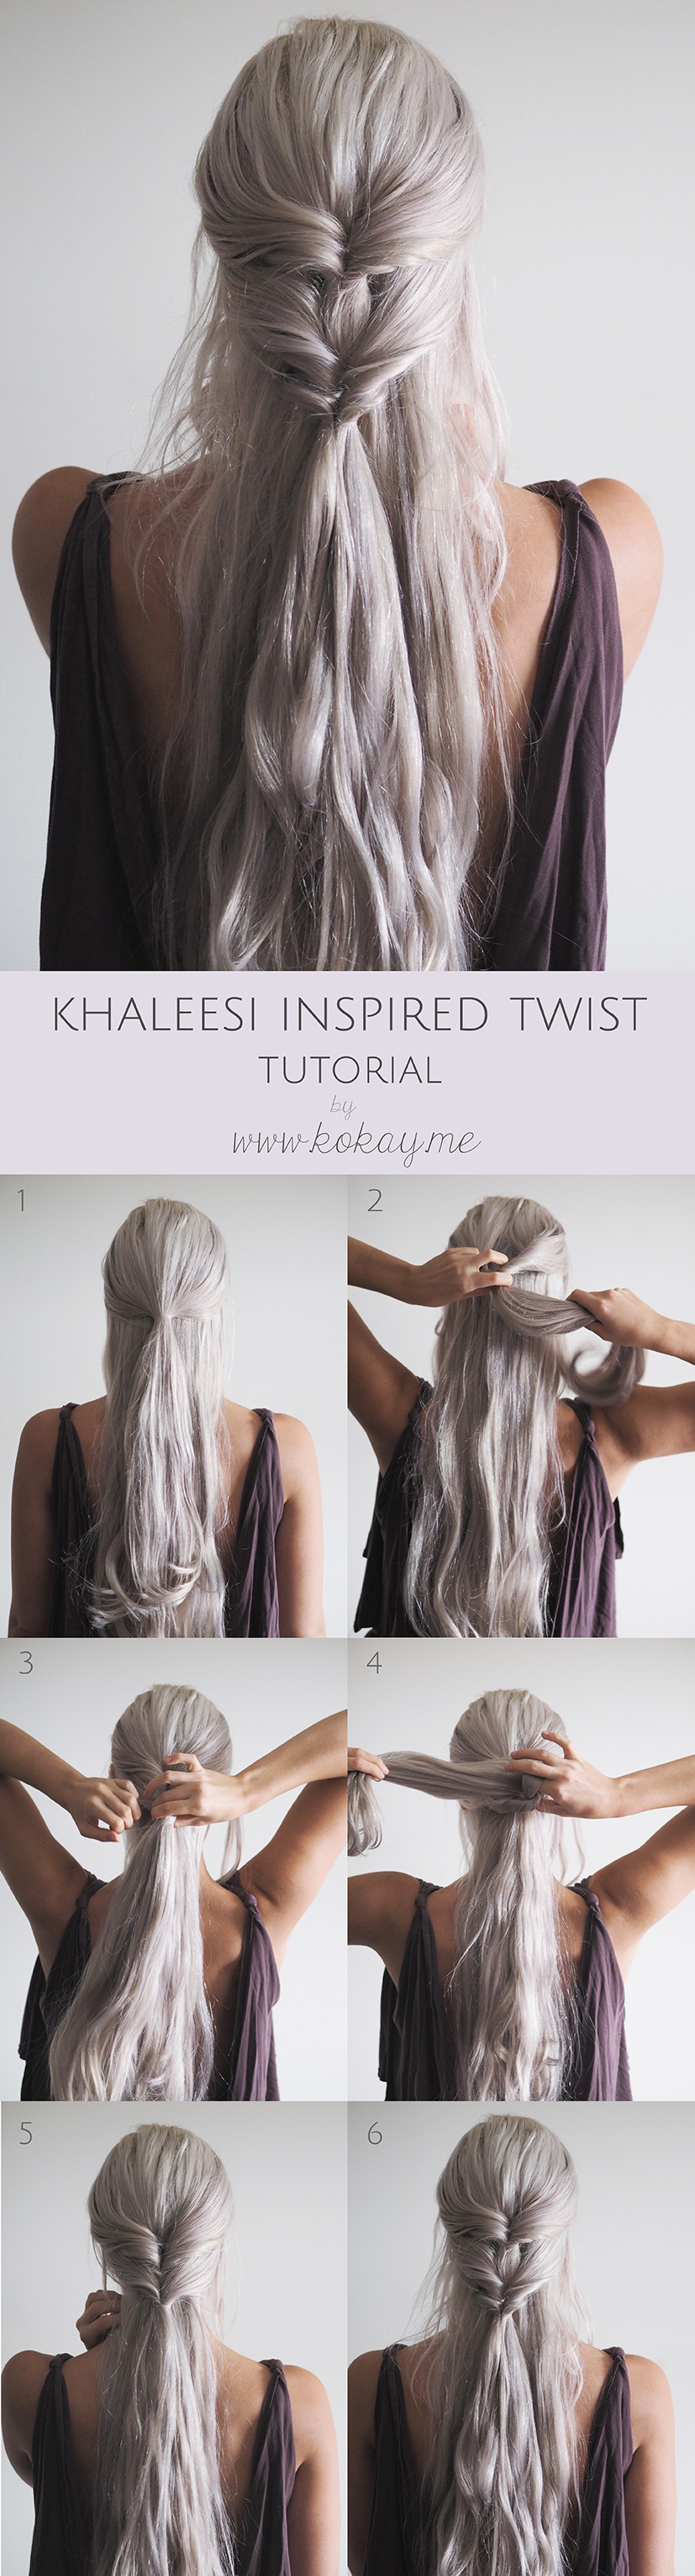 Khaleesi inspired tutorial